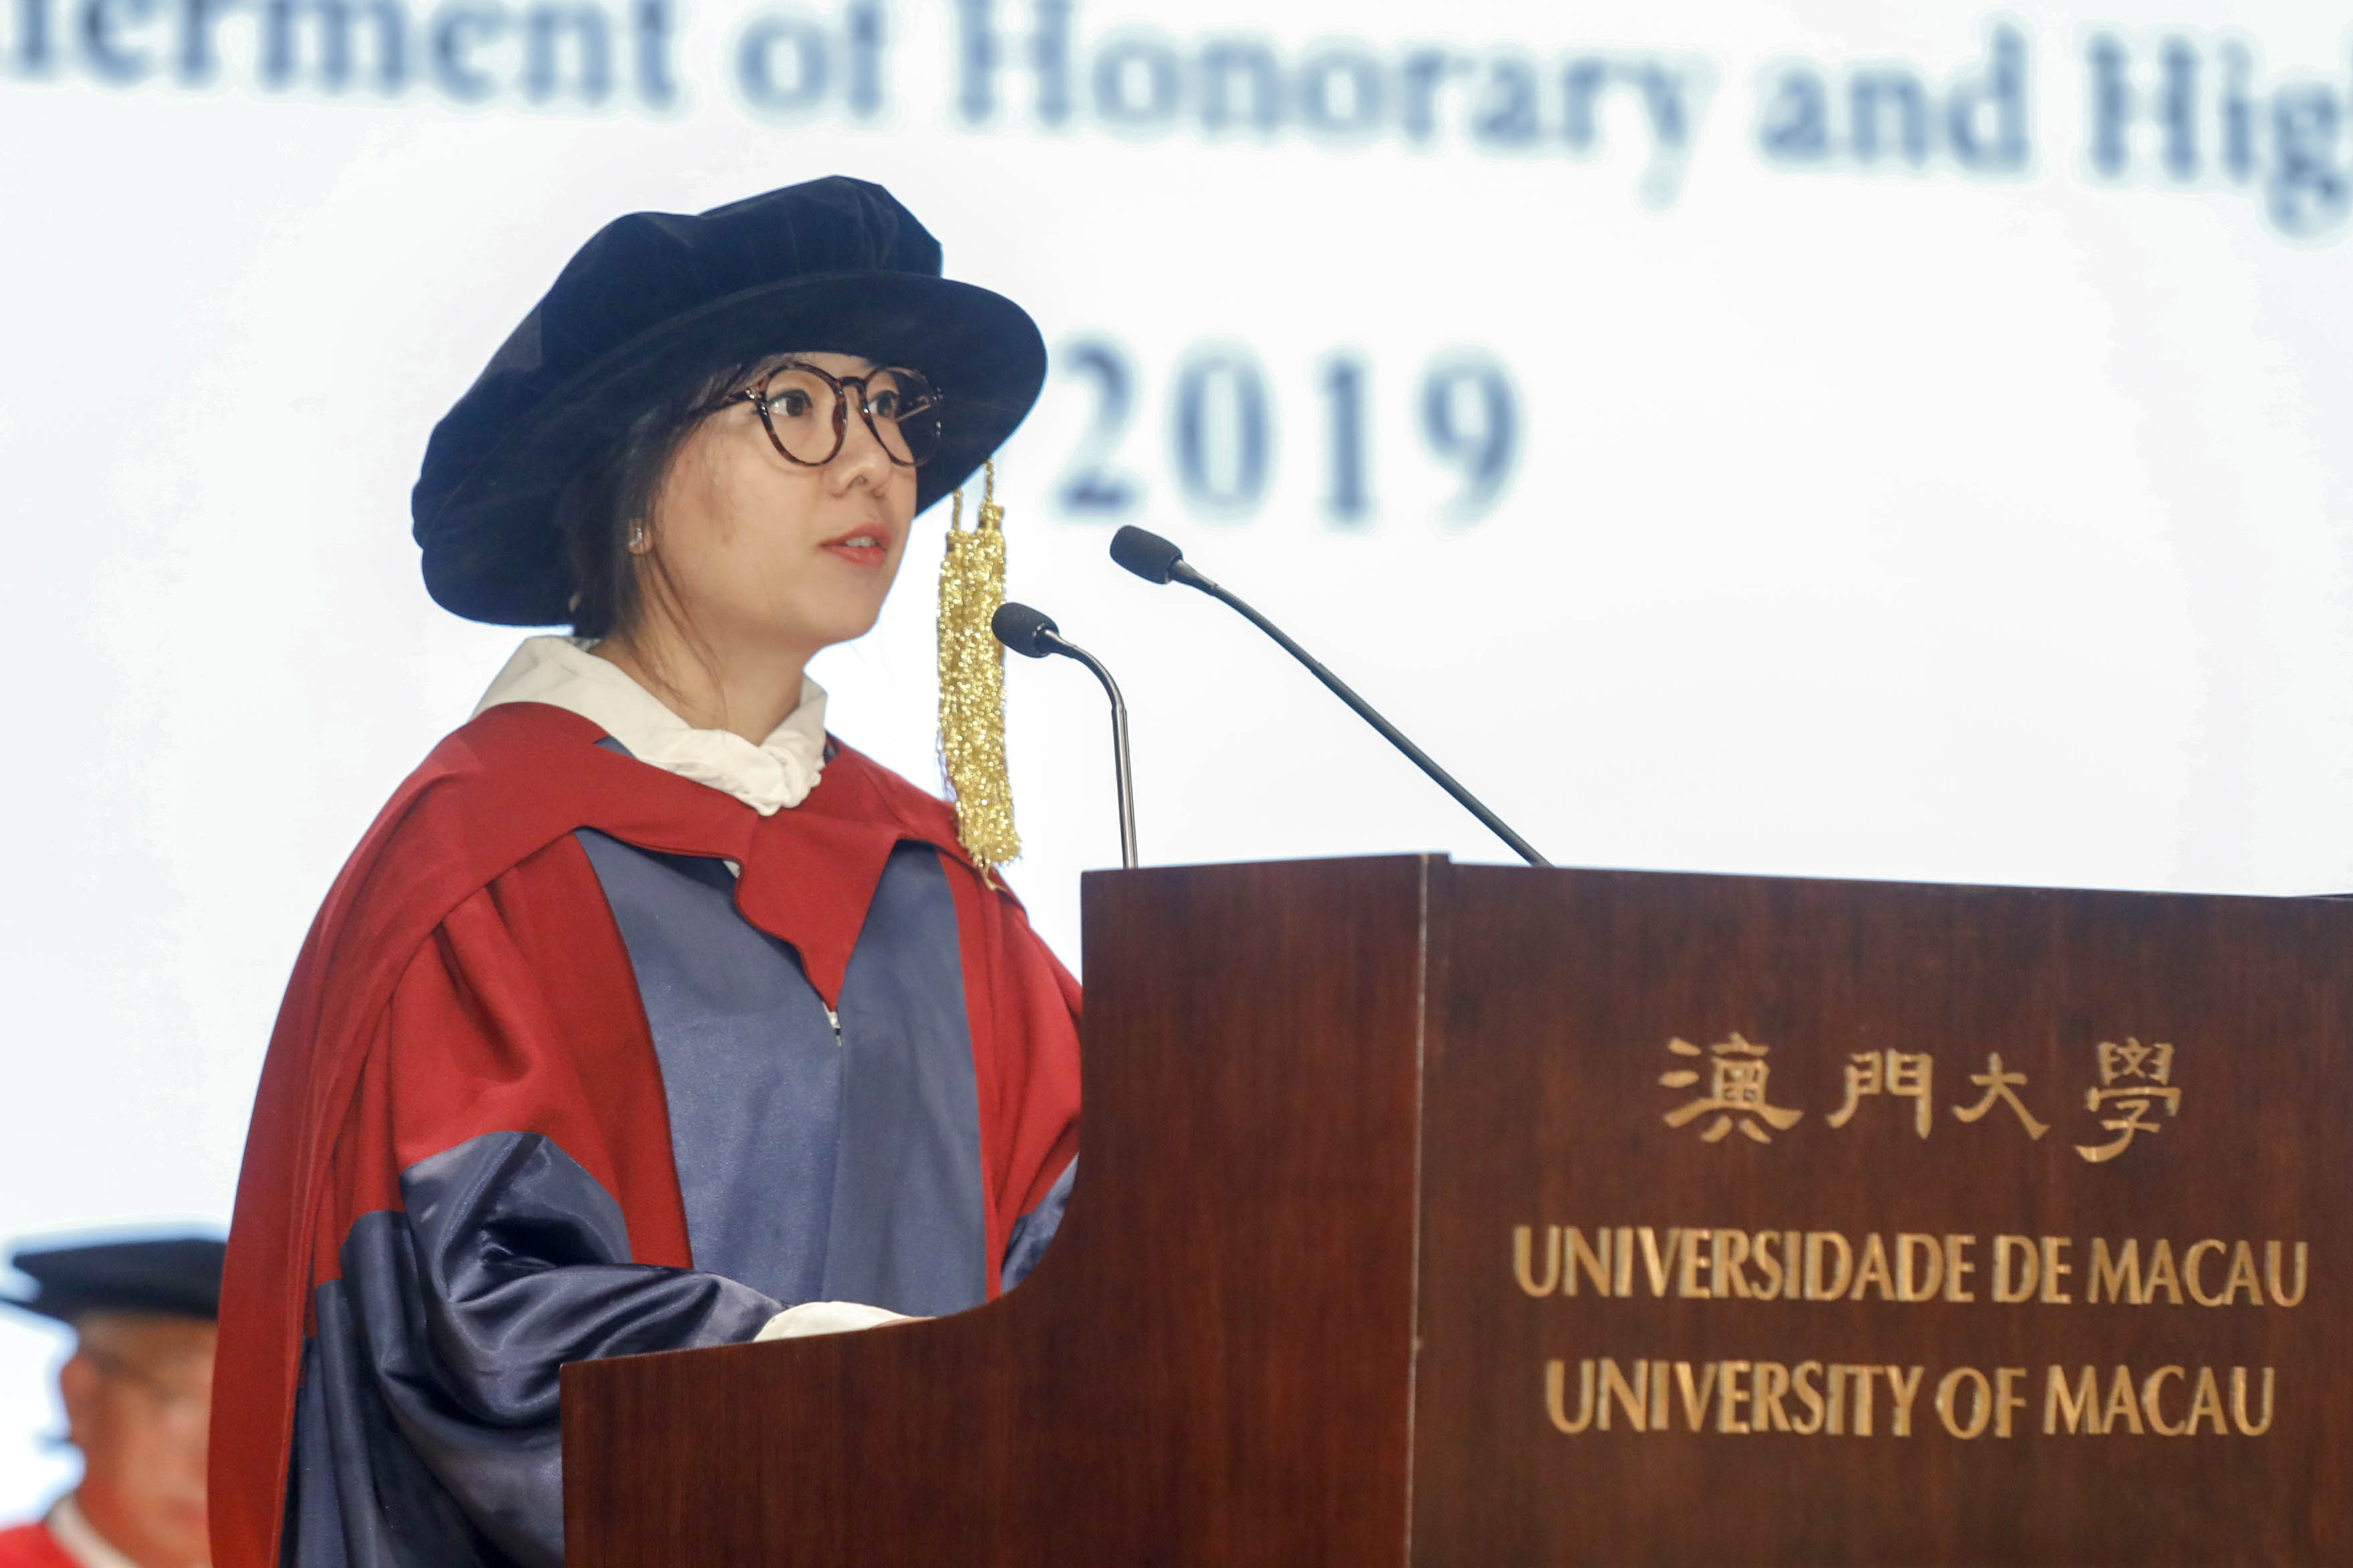 Liu Yifan thanks the university for its quality education